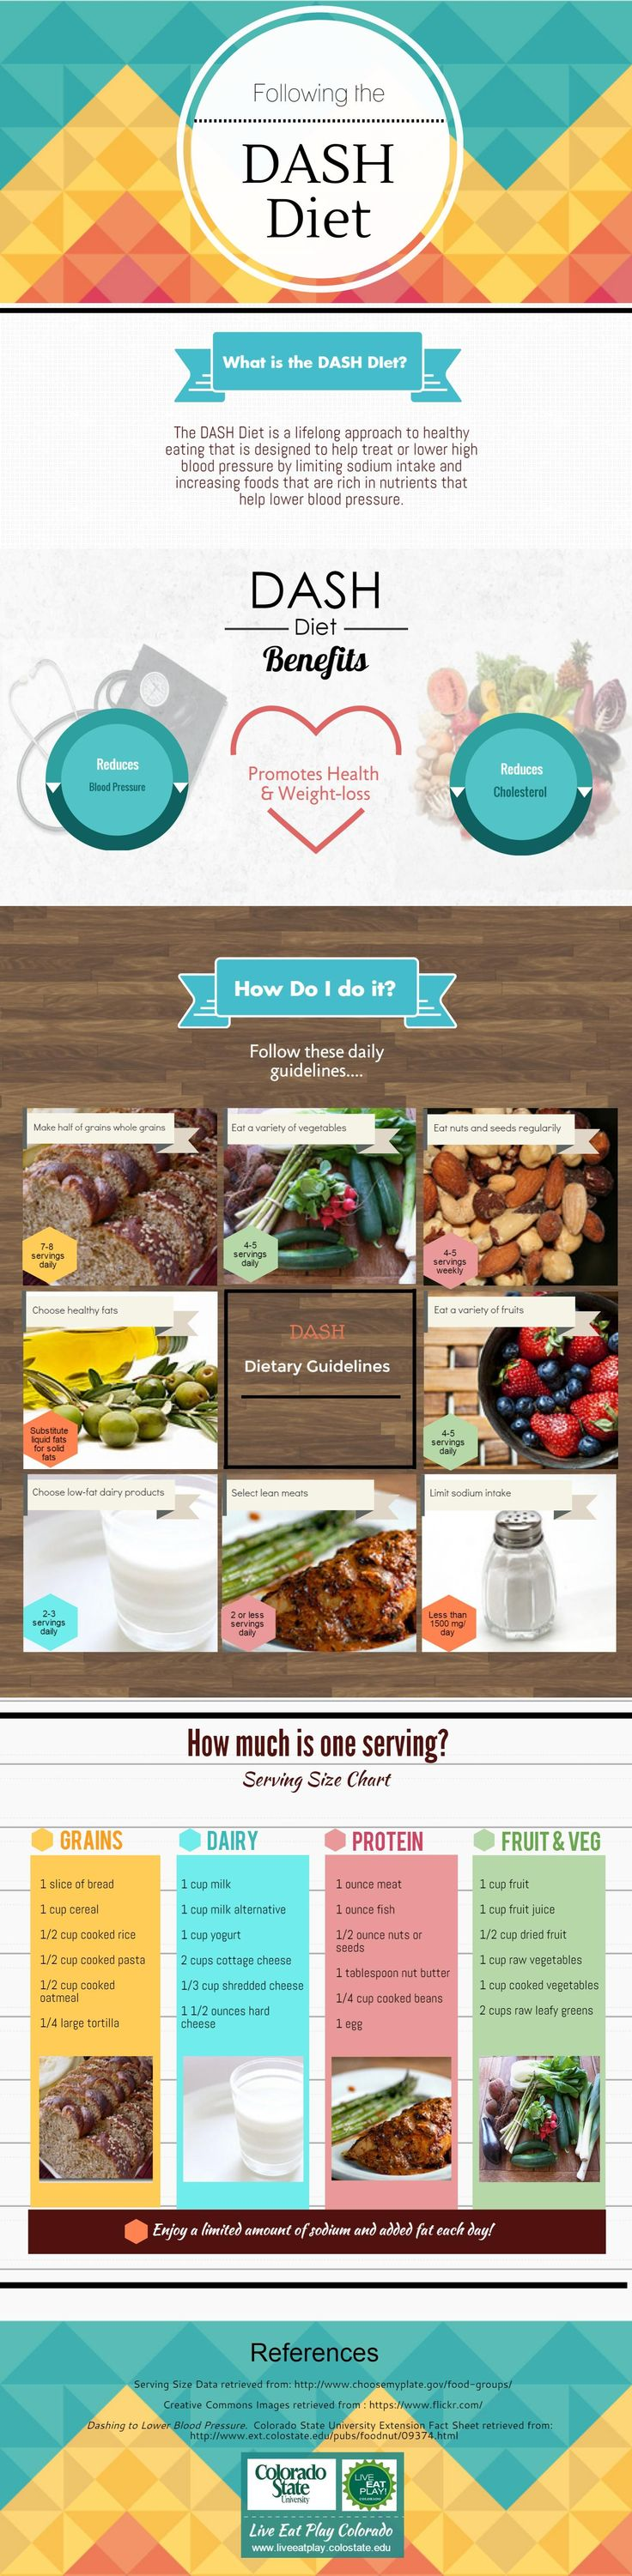 53 best dash diet images on pinterest clean eating meals healthy learn about the ins and outs of the dash diet with this infographic the dash diet reduces cholesterol blood pressure and promotes healthy weight loss forumfinder Choice Image